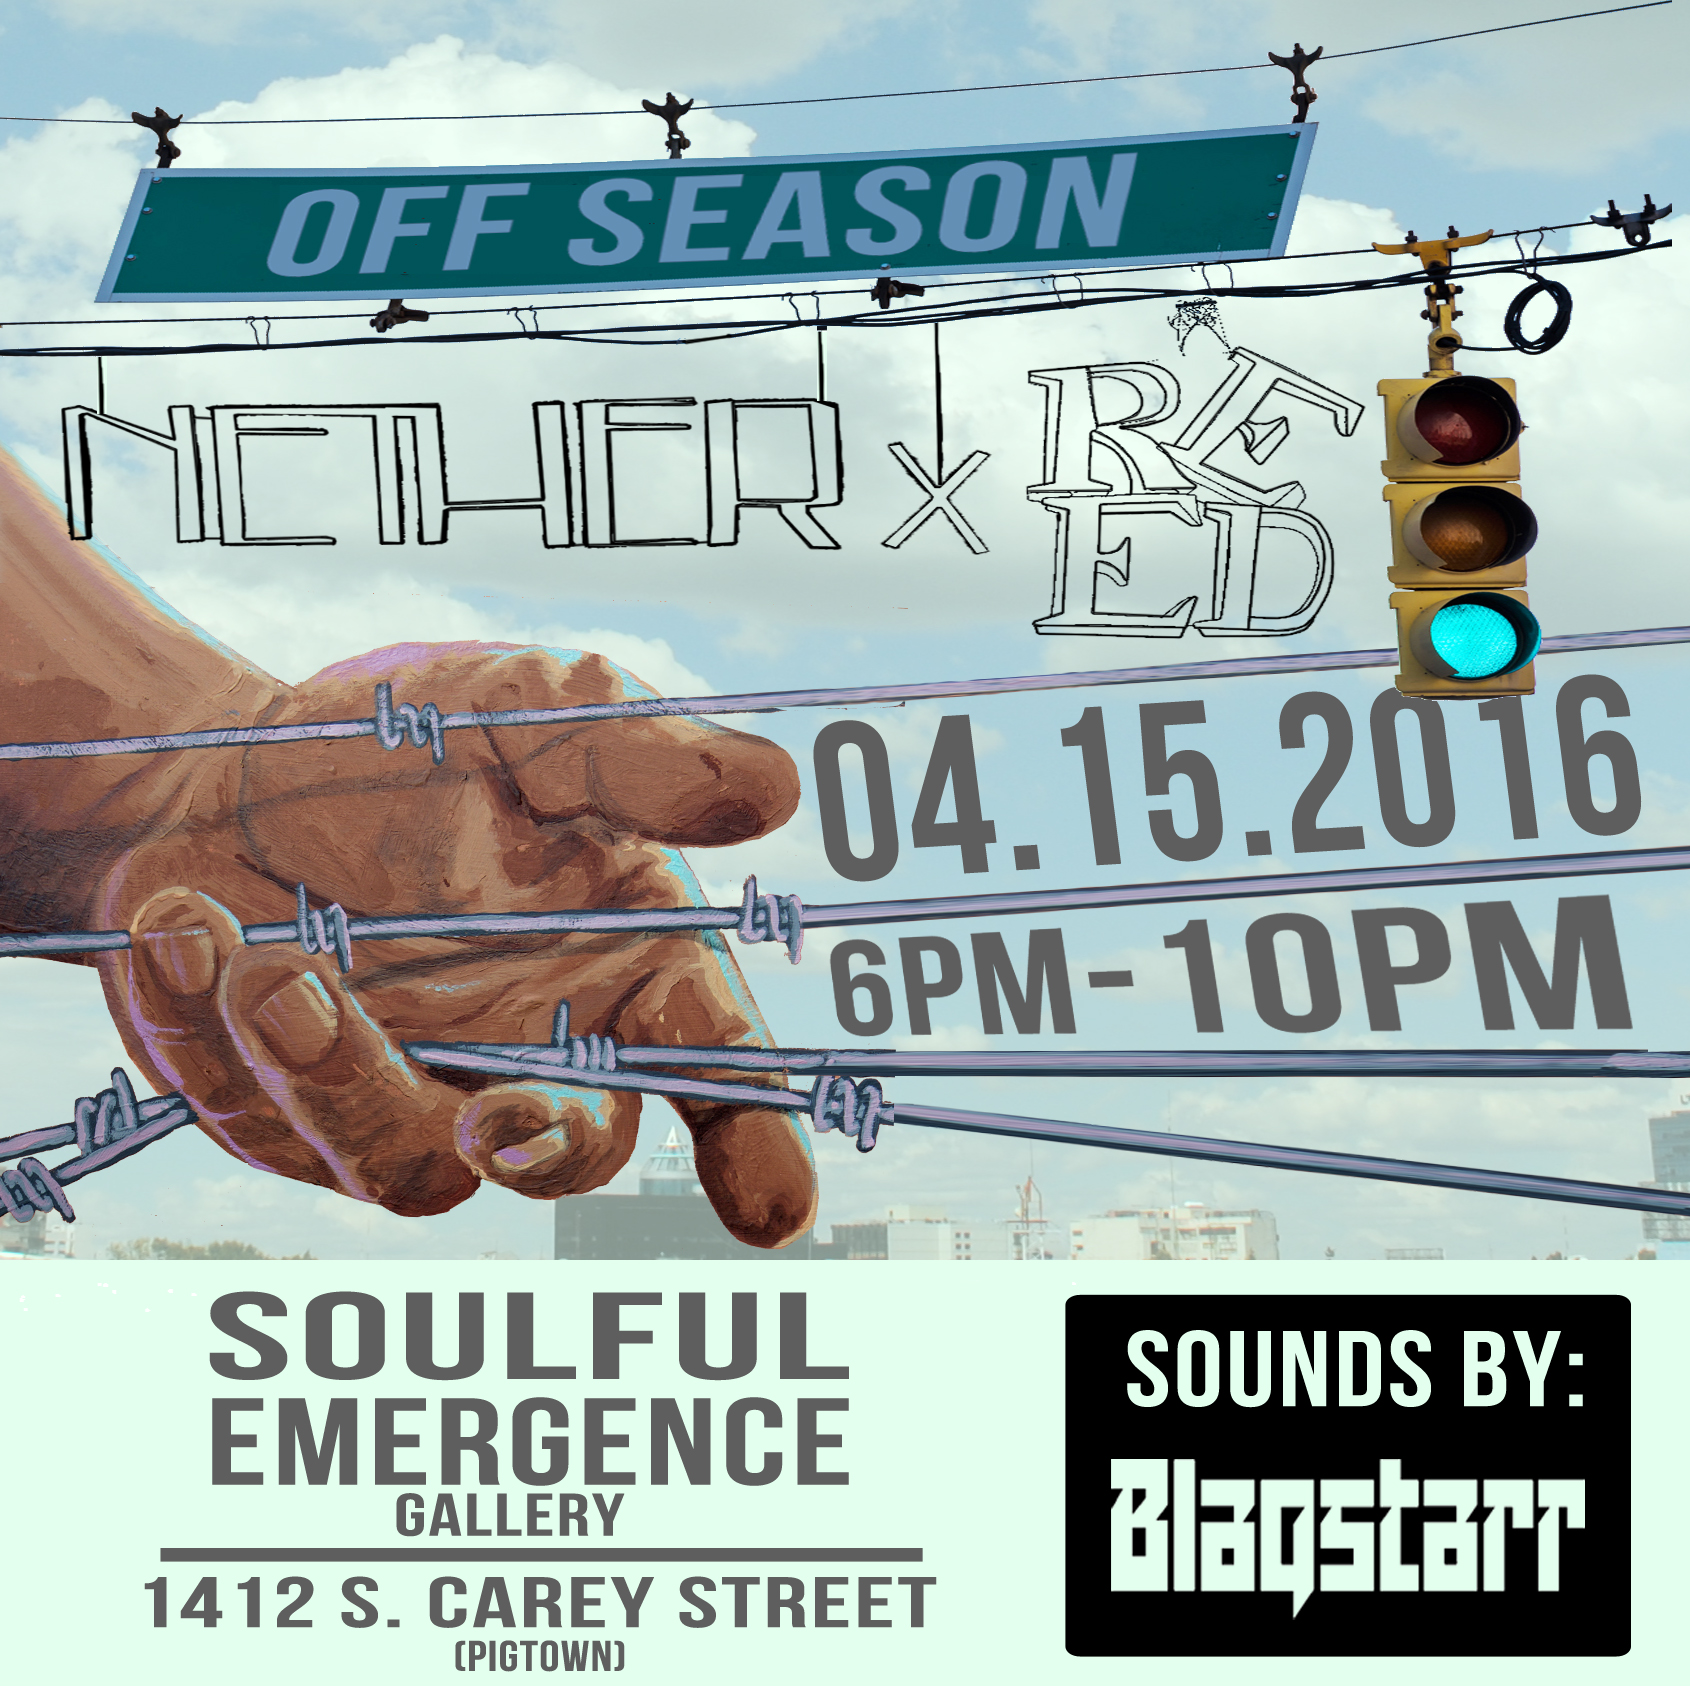 nether reed square flyer.jpg